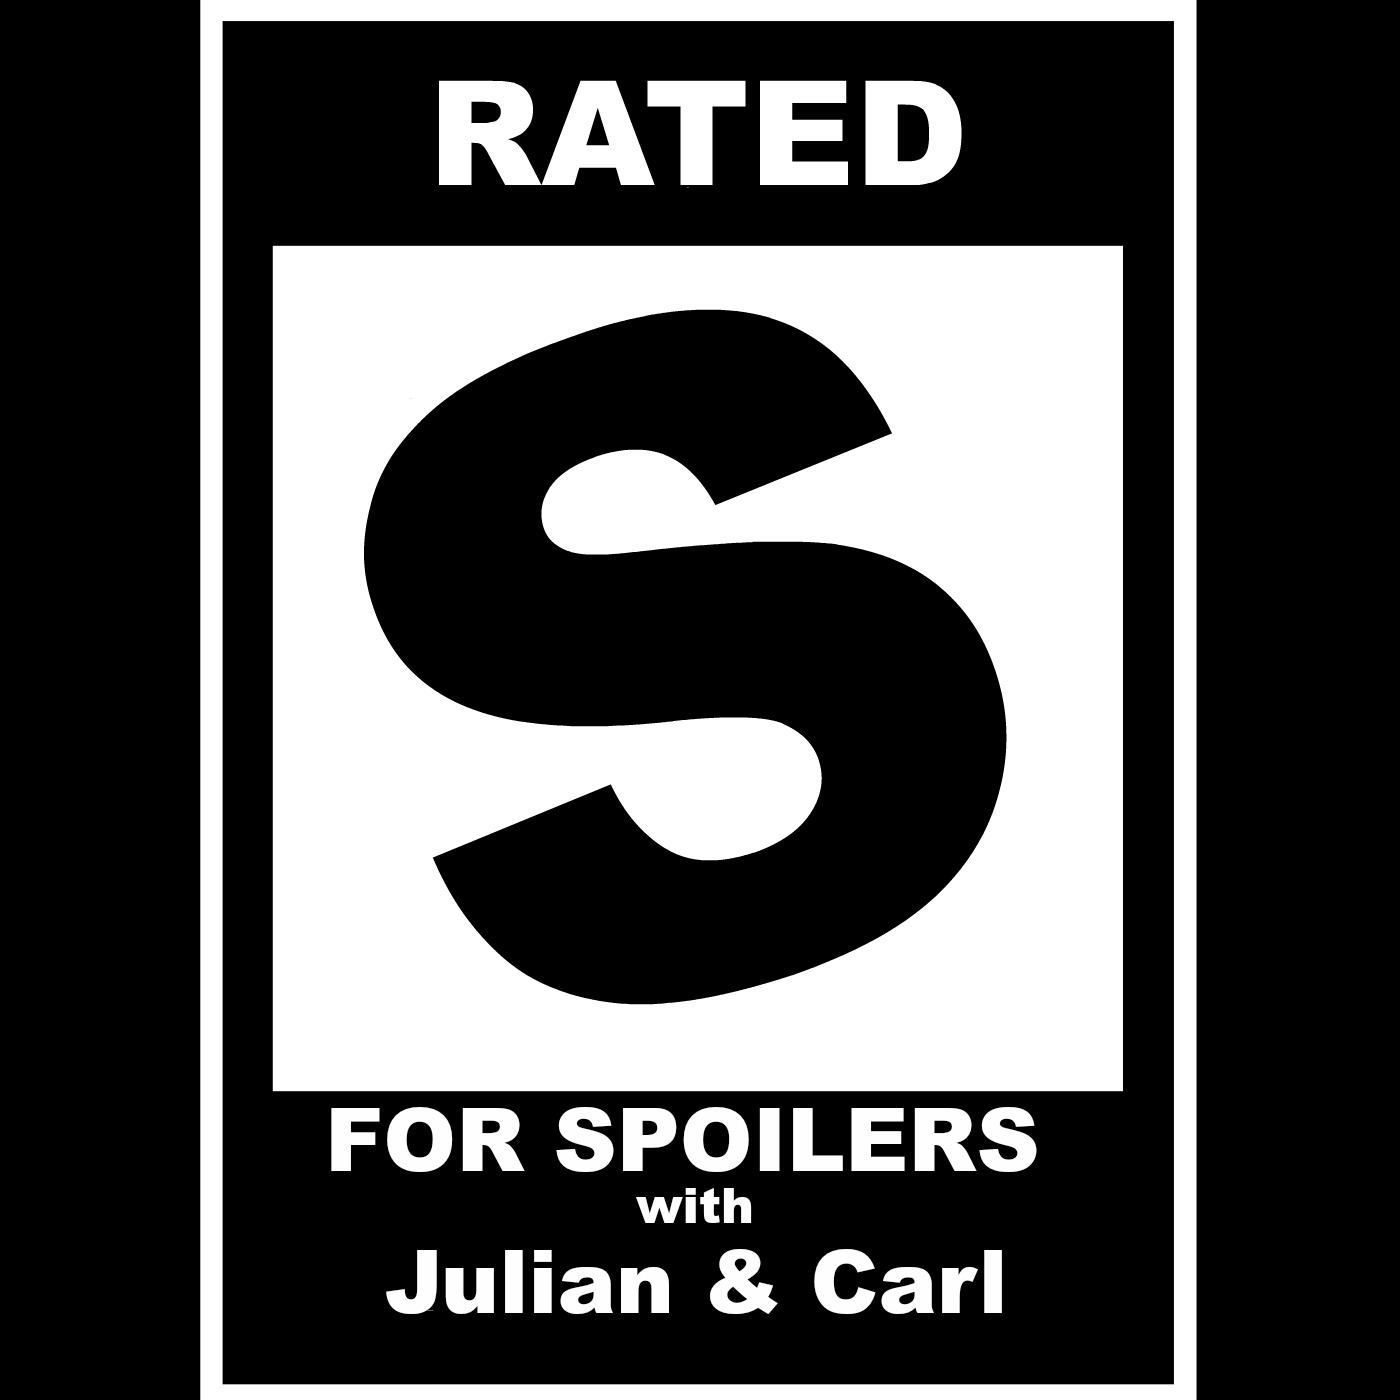 Rated S For Spoilers - Julian Fernandez